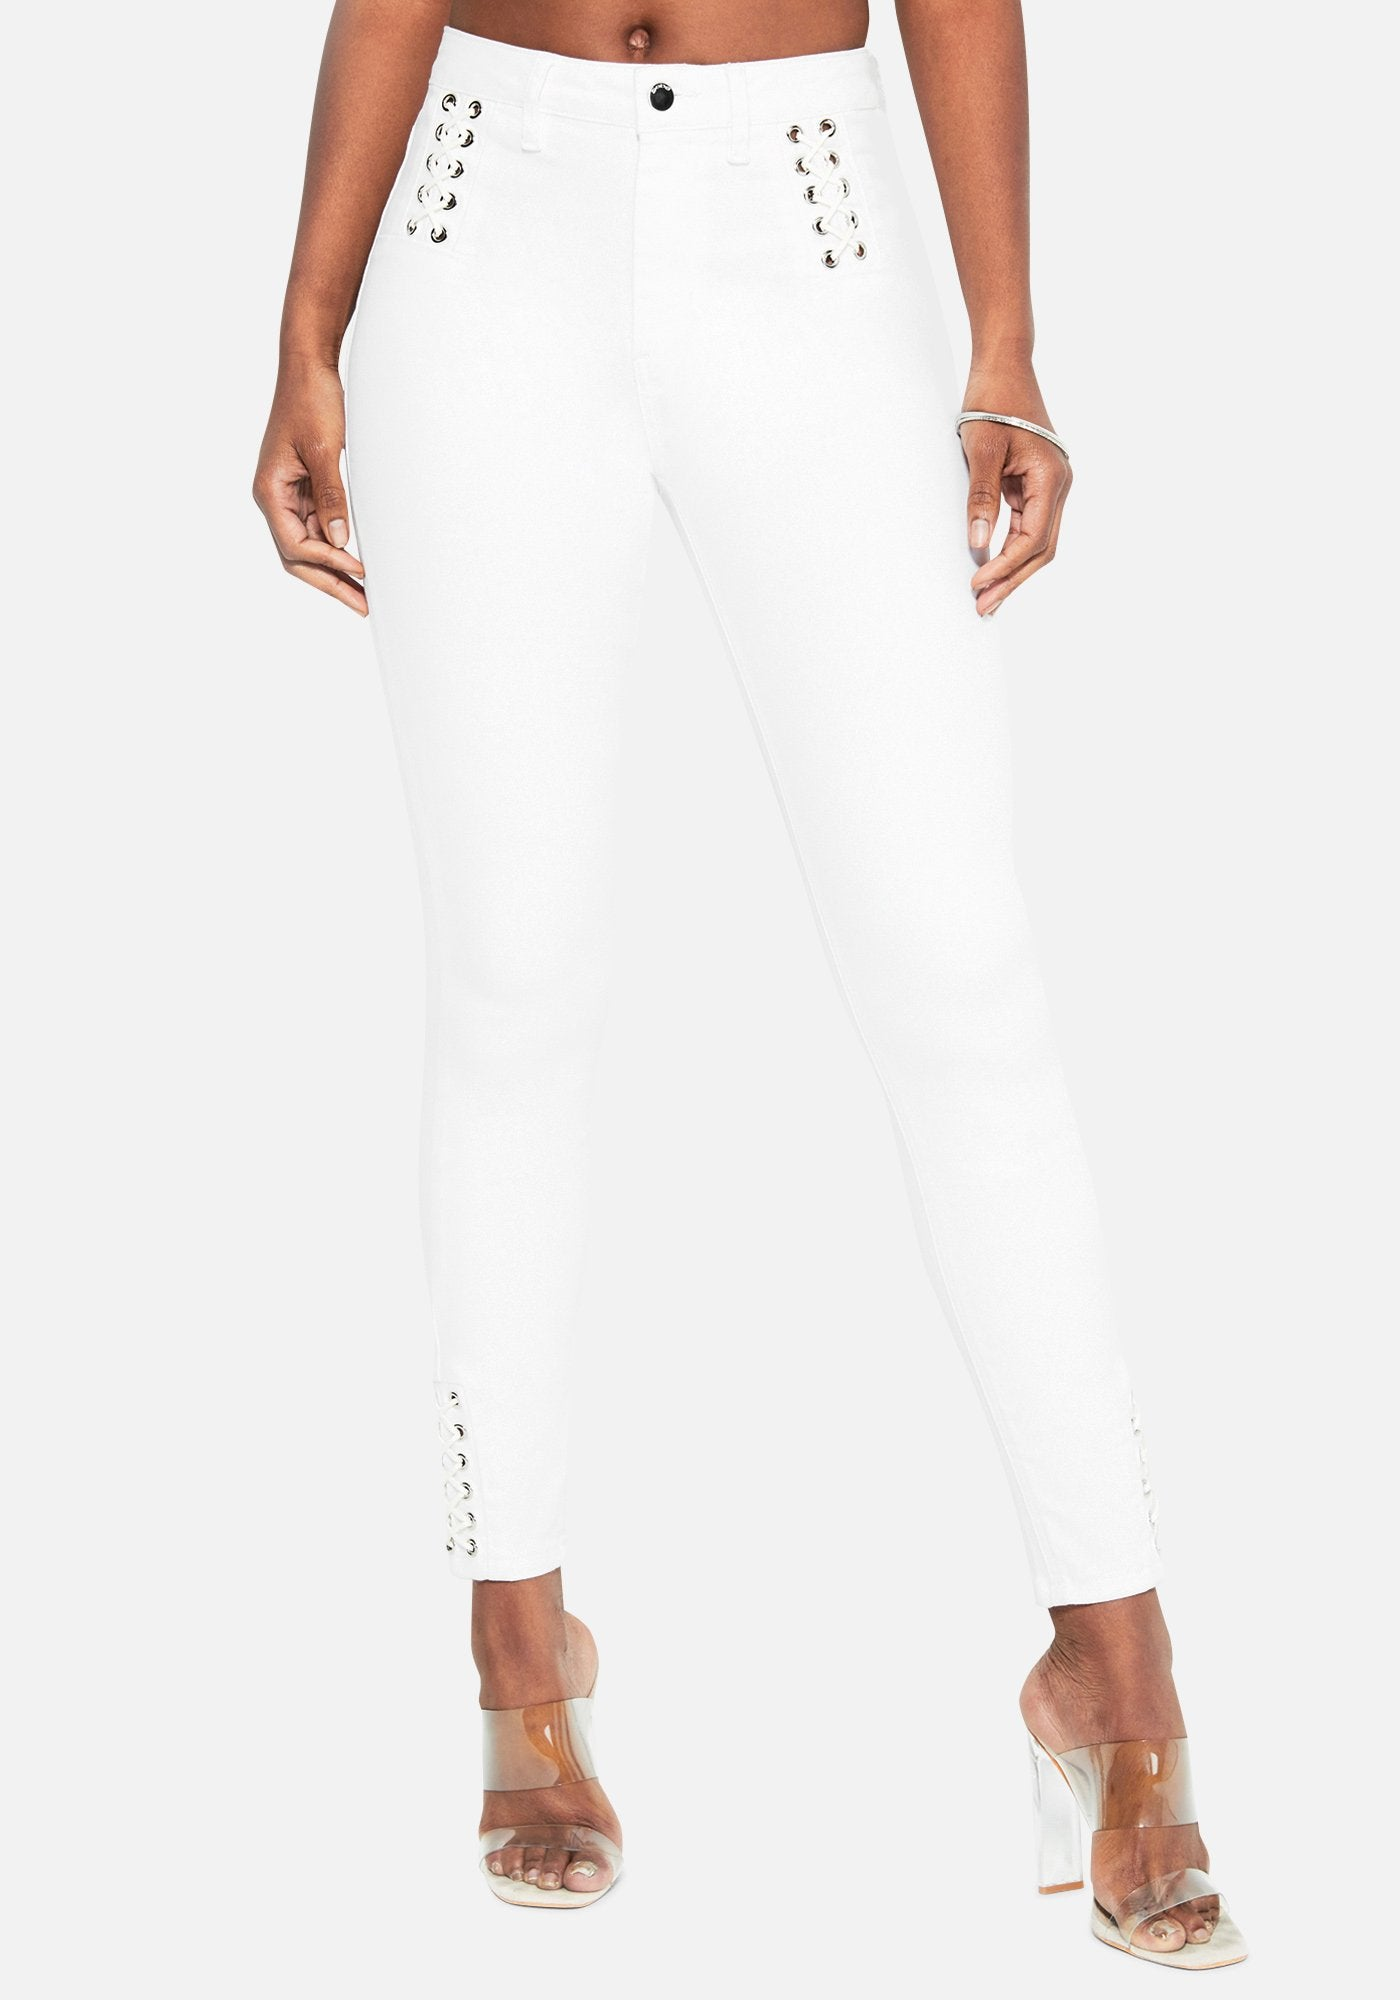 Bebe Women's Lace Detail Skinny Jeans, Size 25 in WHITE Cotton/Spandex